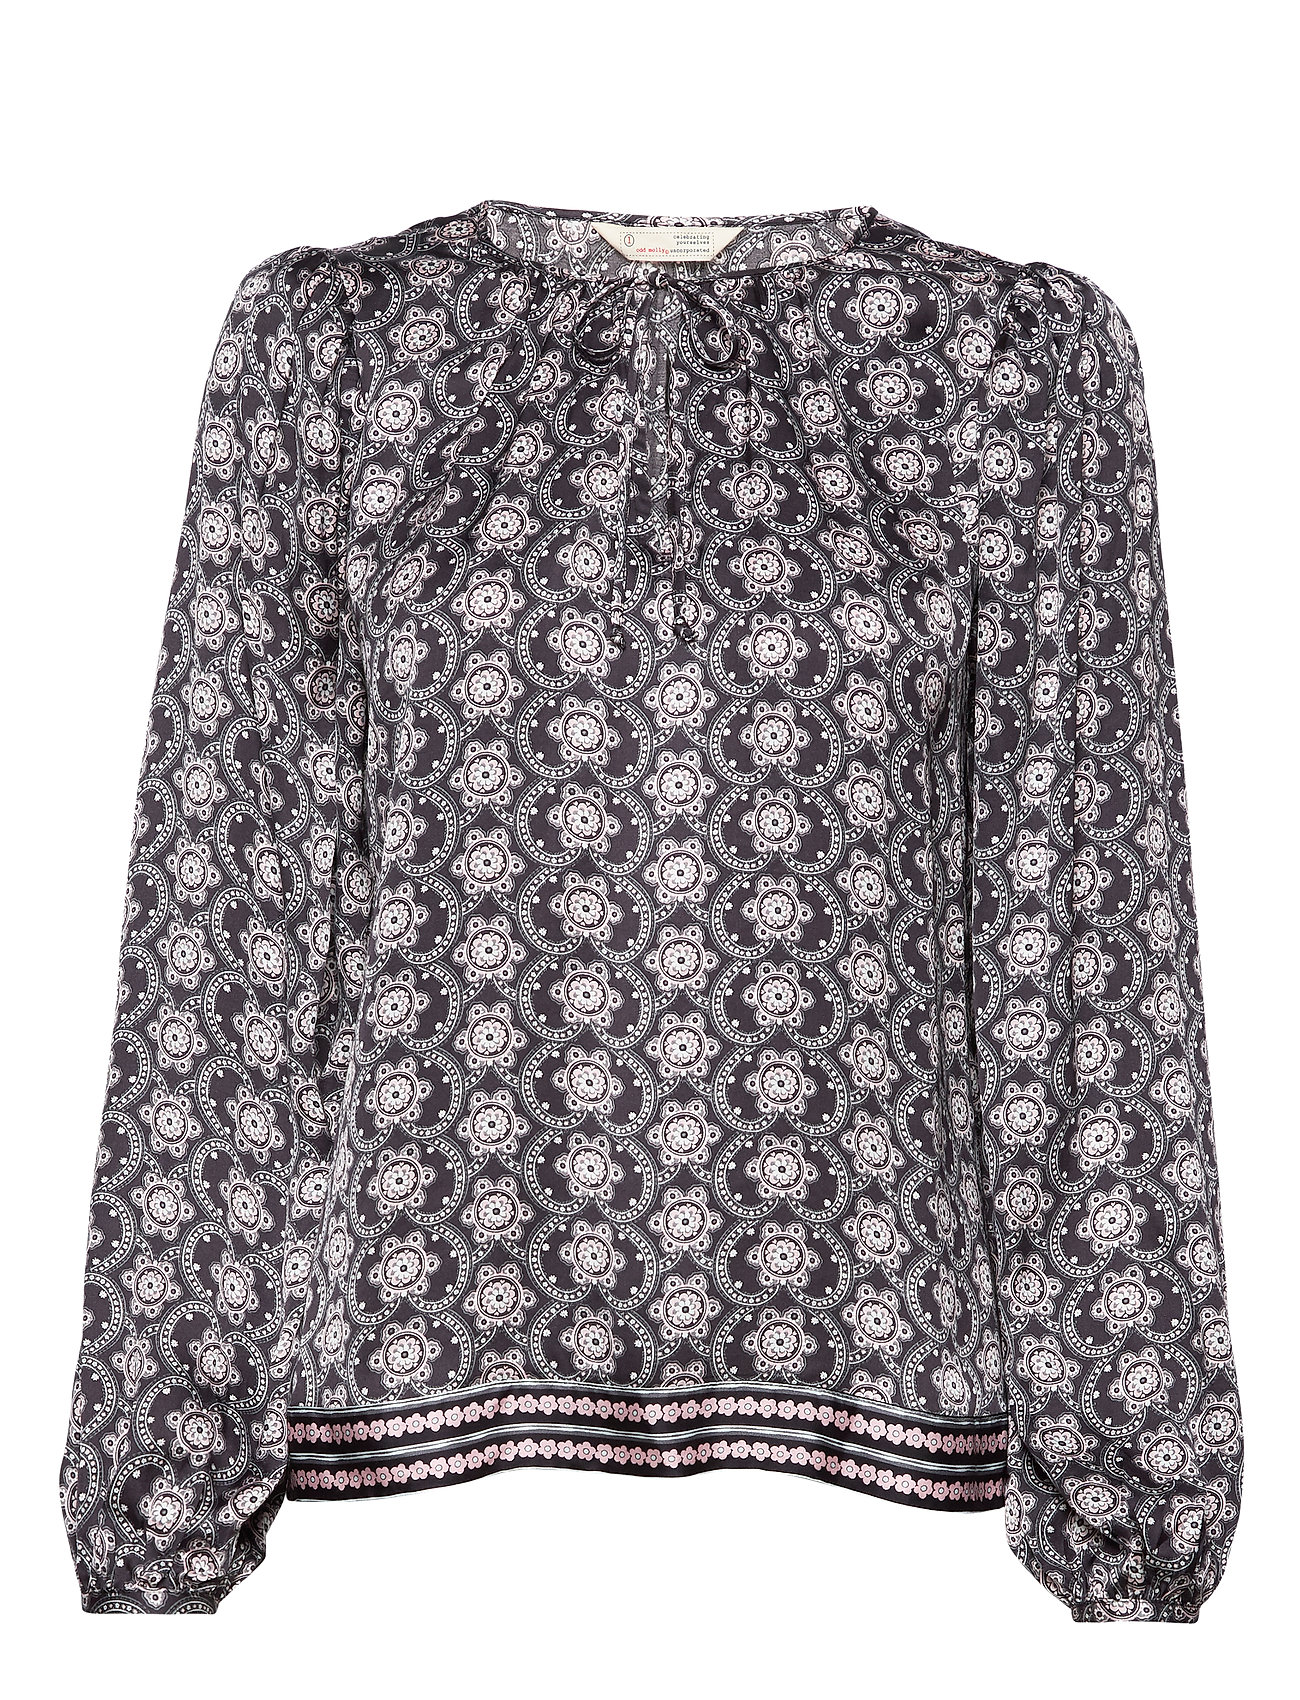 ODD MOLLY Insanely Right Blouse - ALMOST BLACK